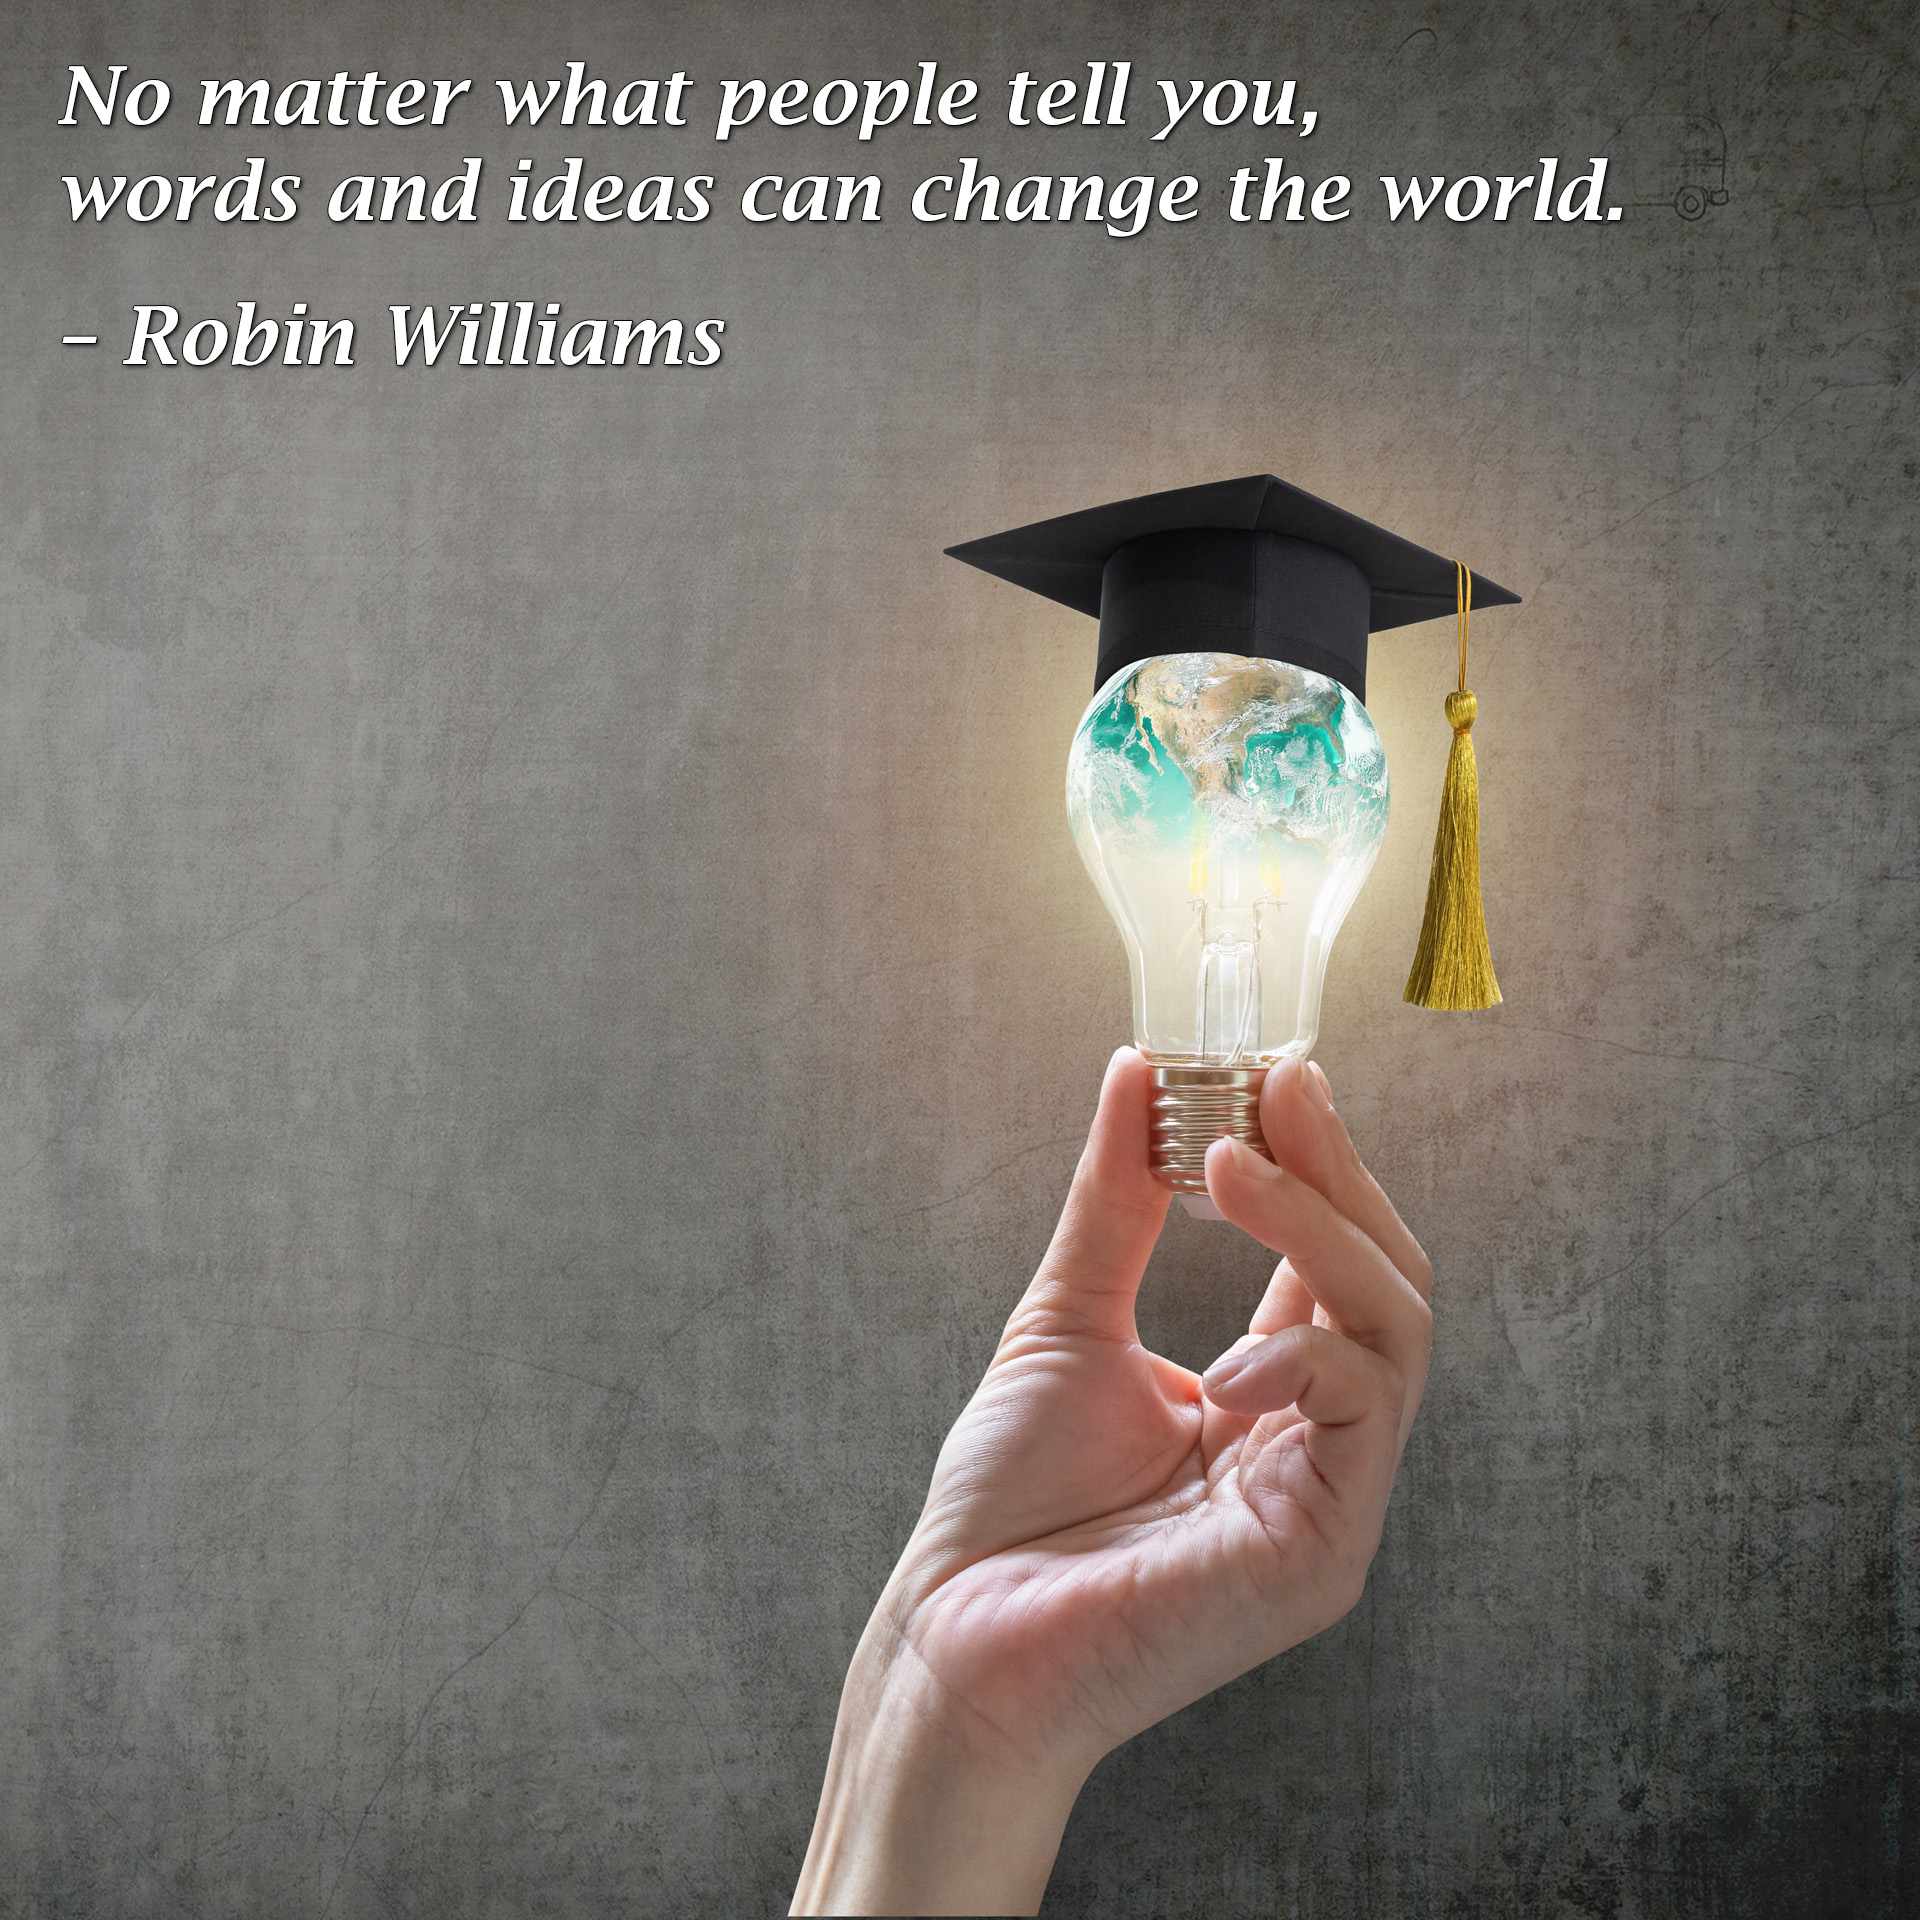 No matter what people tell you, words and ideas can change the world. – Robin Williams - Free Teens Youth - Changing Minds, Transforming Lives